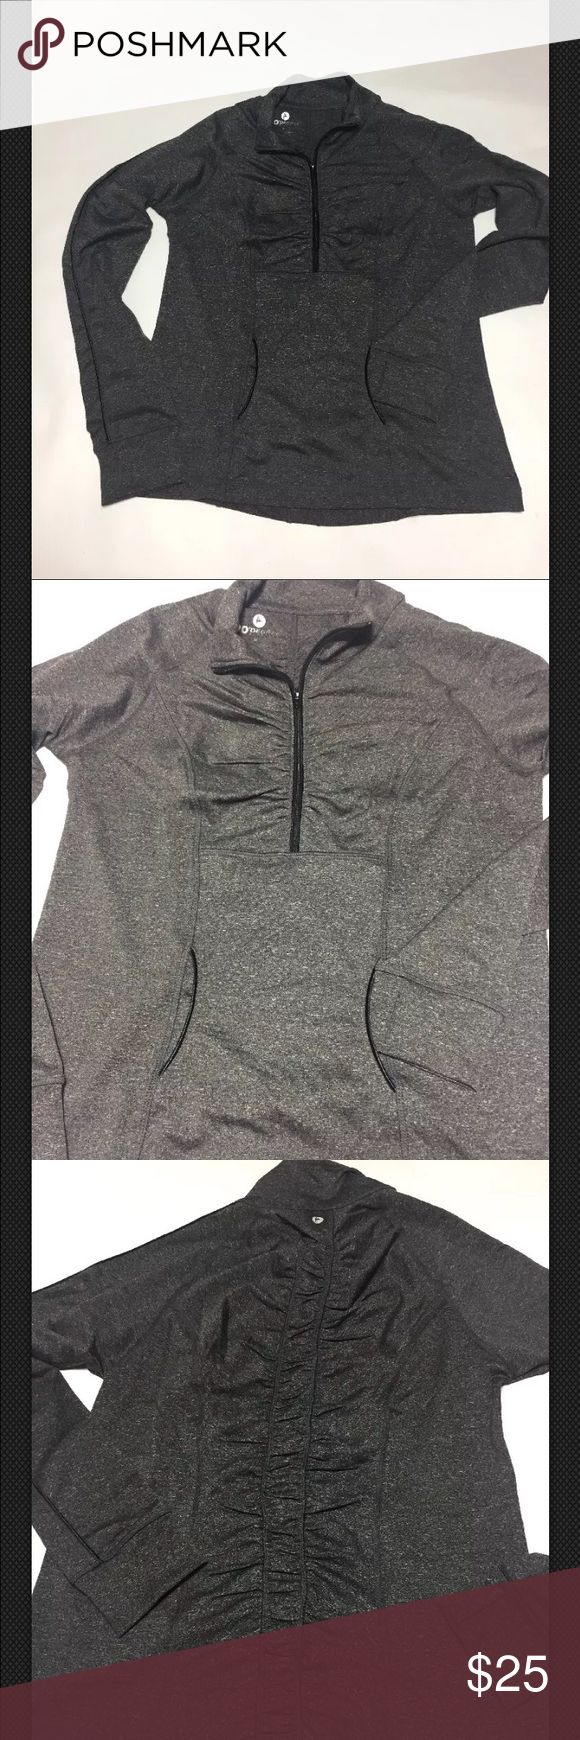 90 Degrees by Reflex Yoga/Run top SZ M NWOT NWOT 90 Degrees by Reflex Yoga- Running top. Ruching on chest and down the back. Dark grey with white flecks. Long sleeve top/jacket. Thumb holes. Two pockets on front. Size medium. 90 Degrees by Reflex Tops Sweatshirts & Hoodies